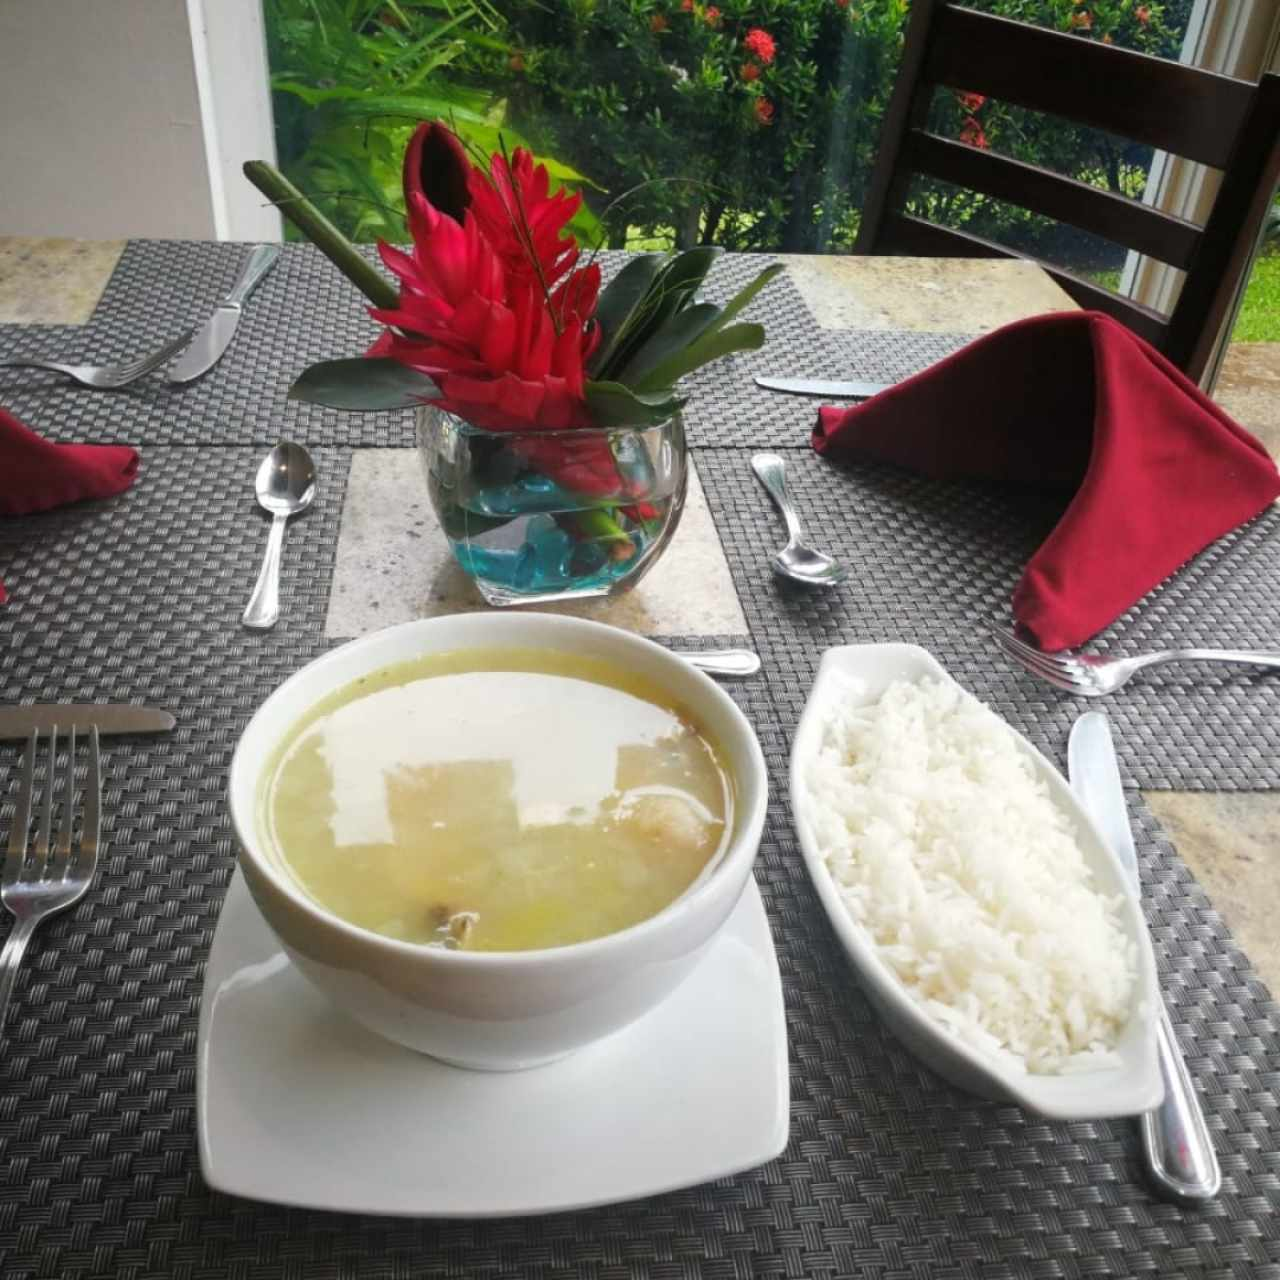 Sancocho con arroz